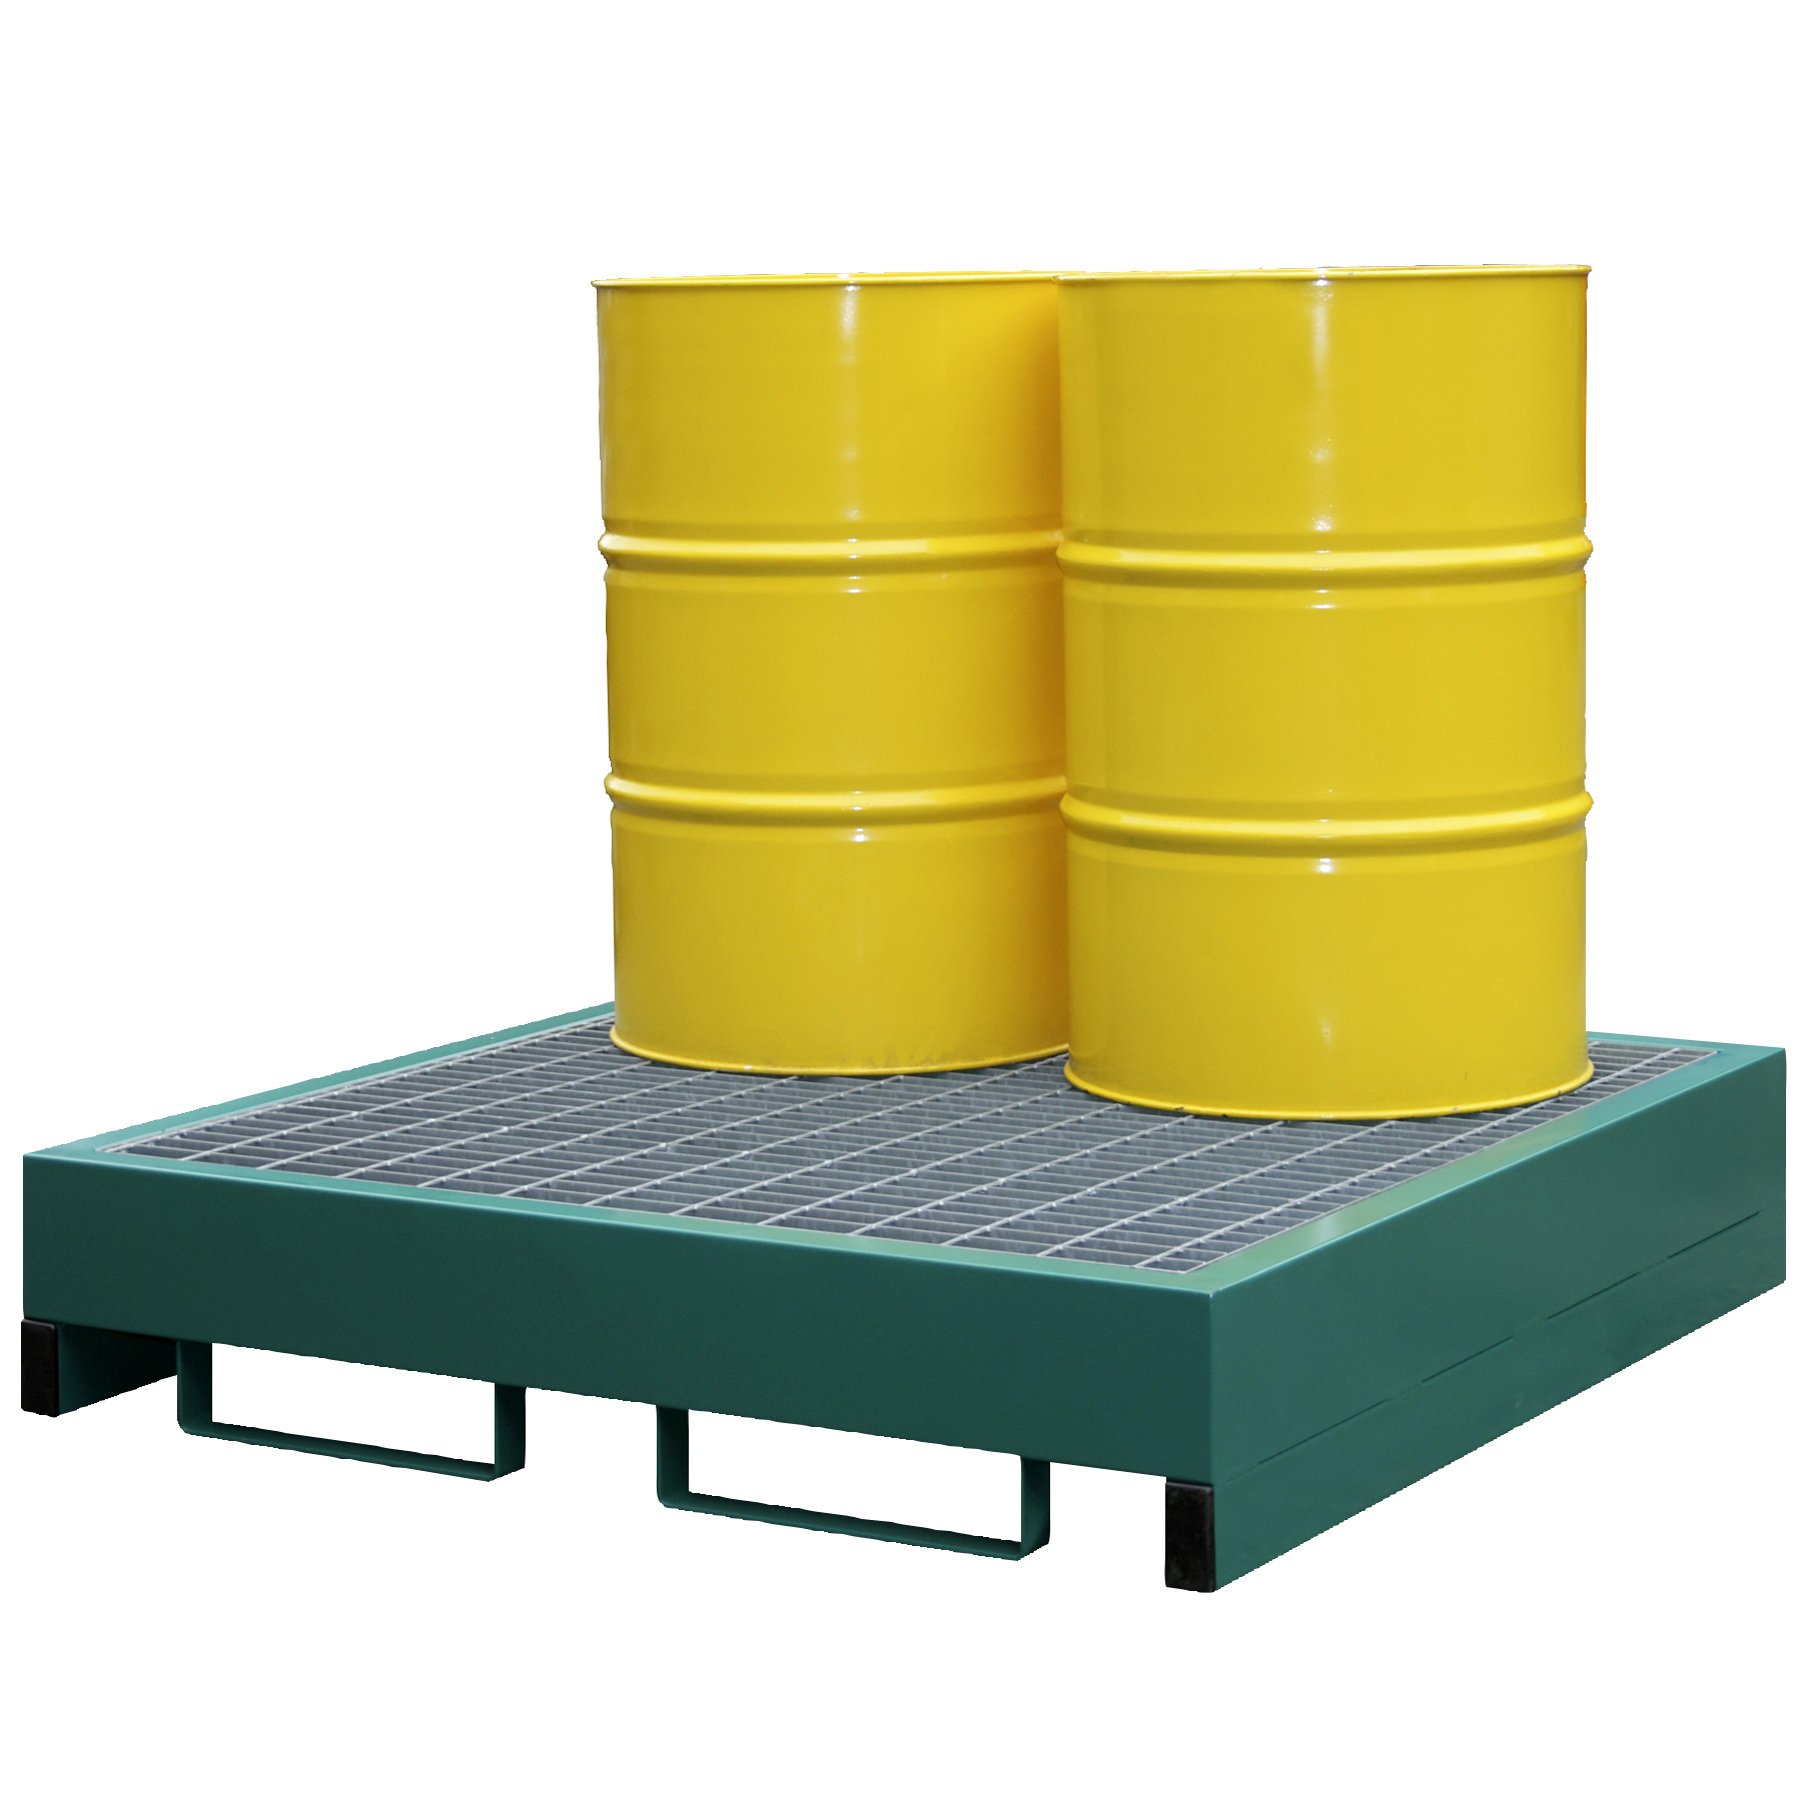 Metal Drum Spill Containment Pallet Holds 4 Drums